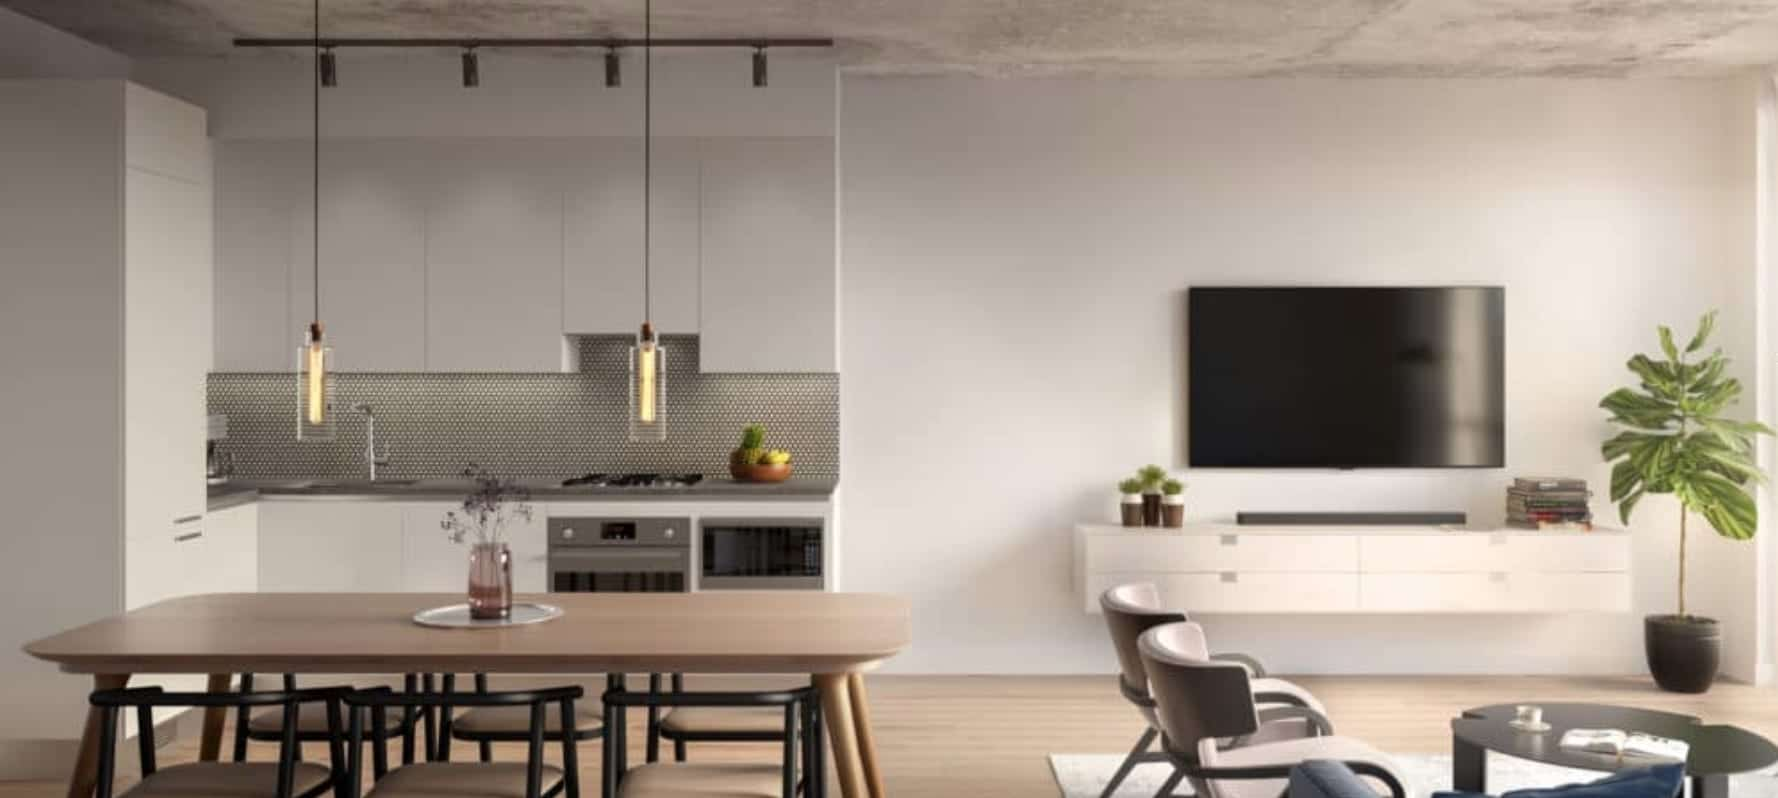 Junction house Condos Interior Features and Finishes True Condos